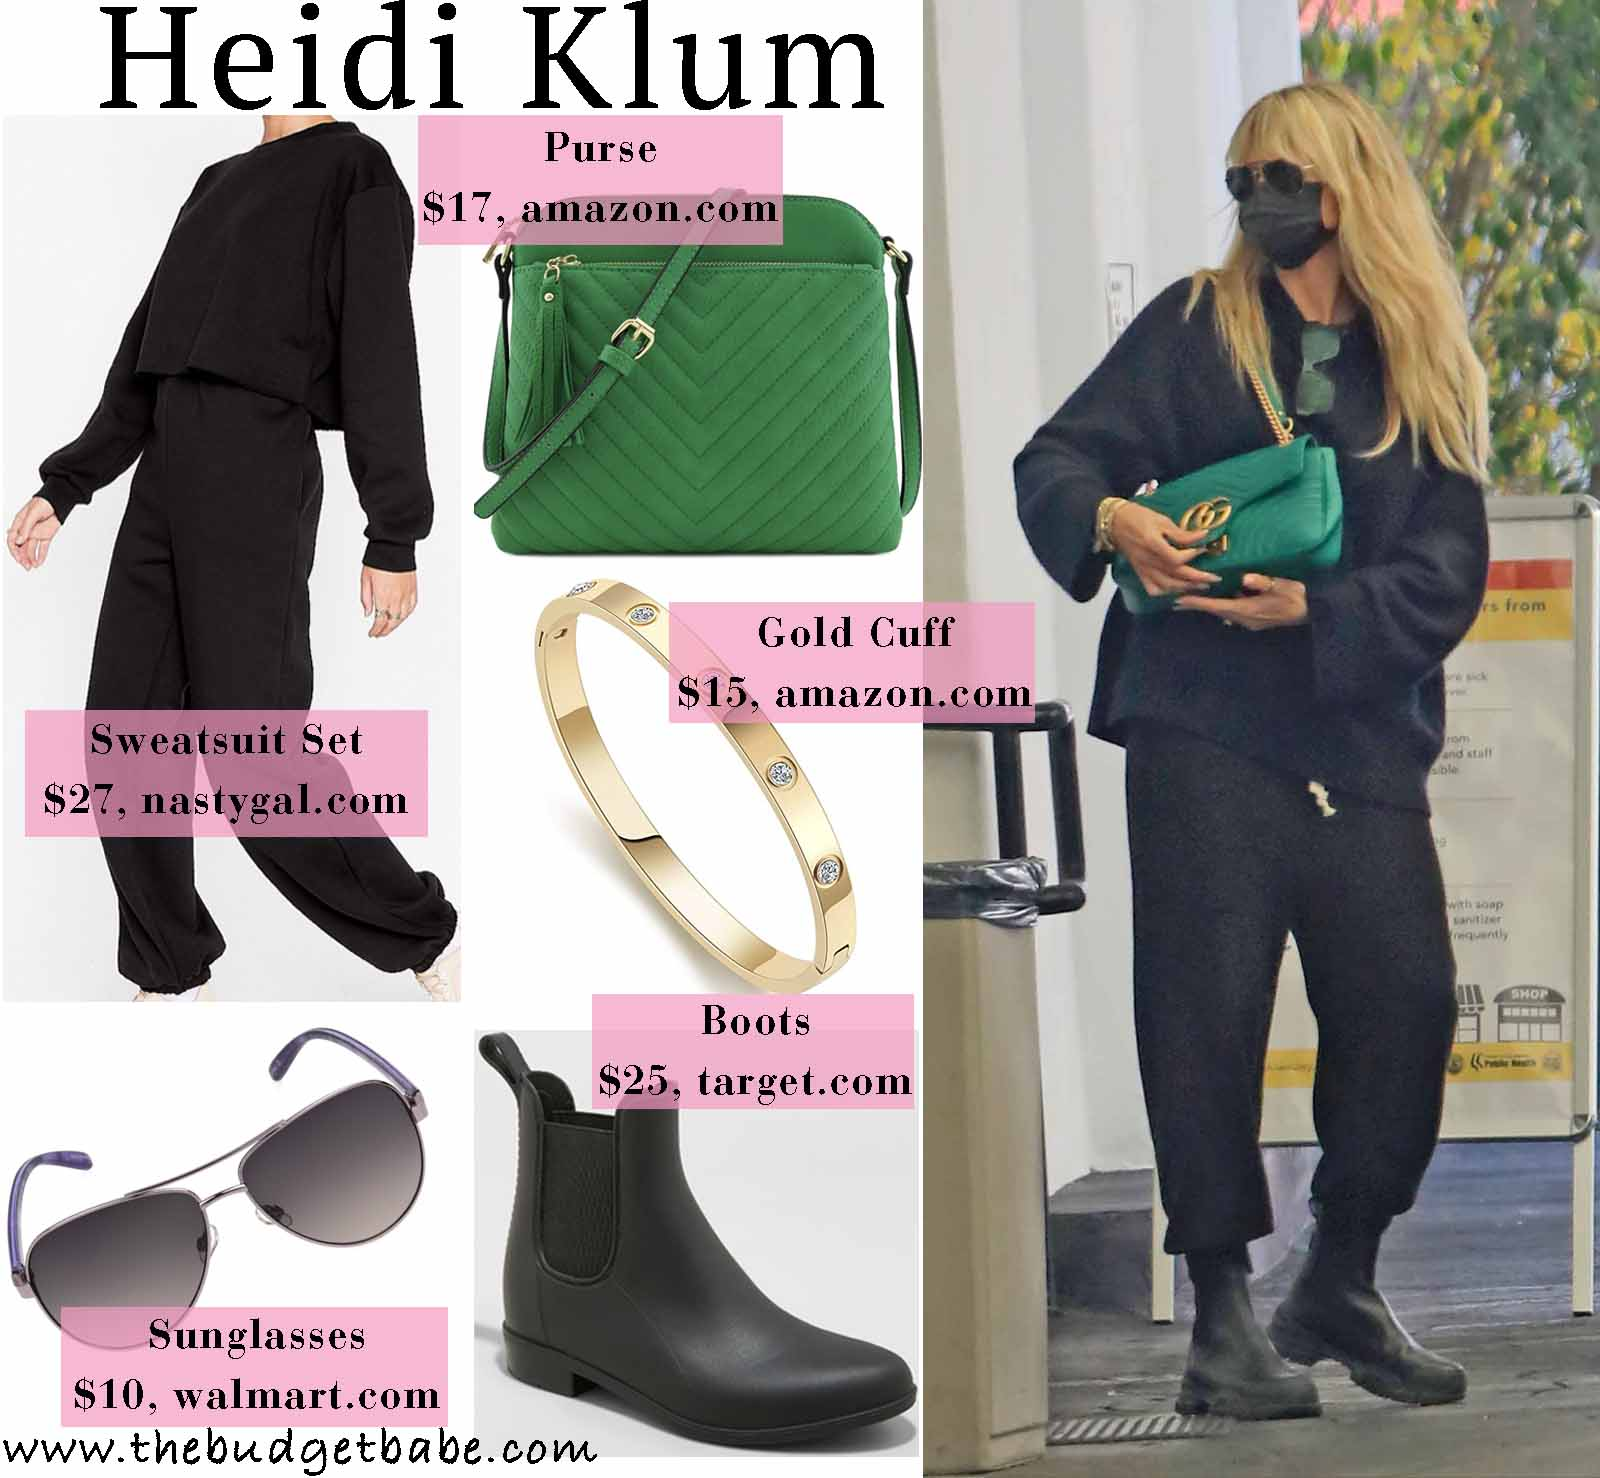 Heidi makes sweatpants chic!